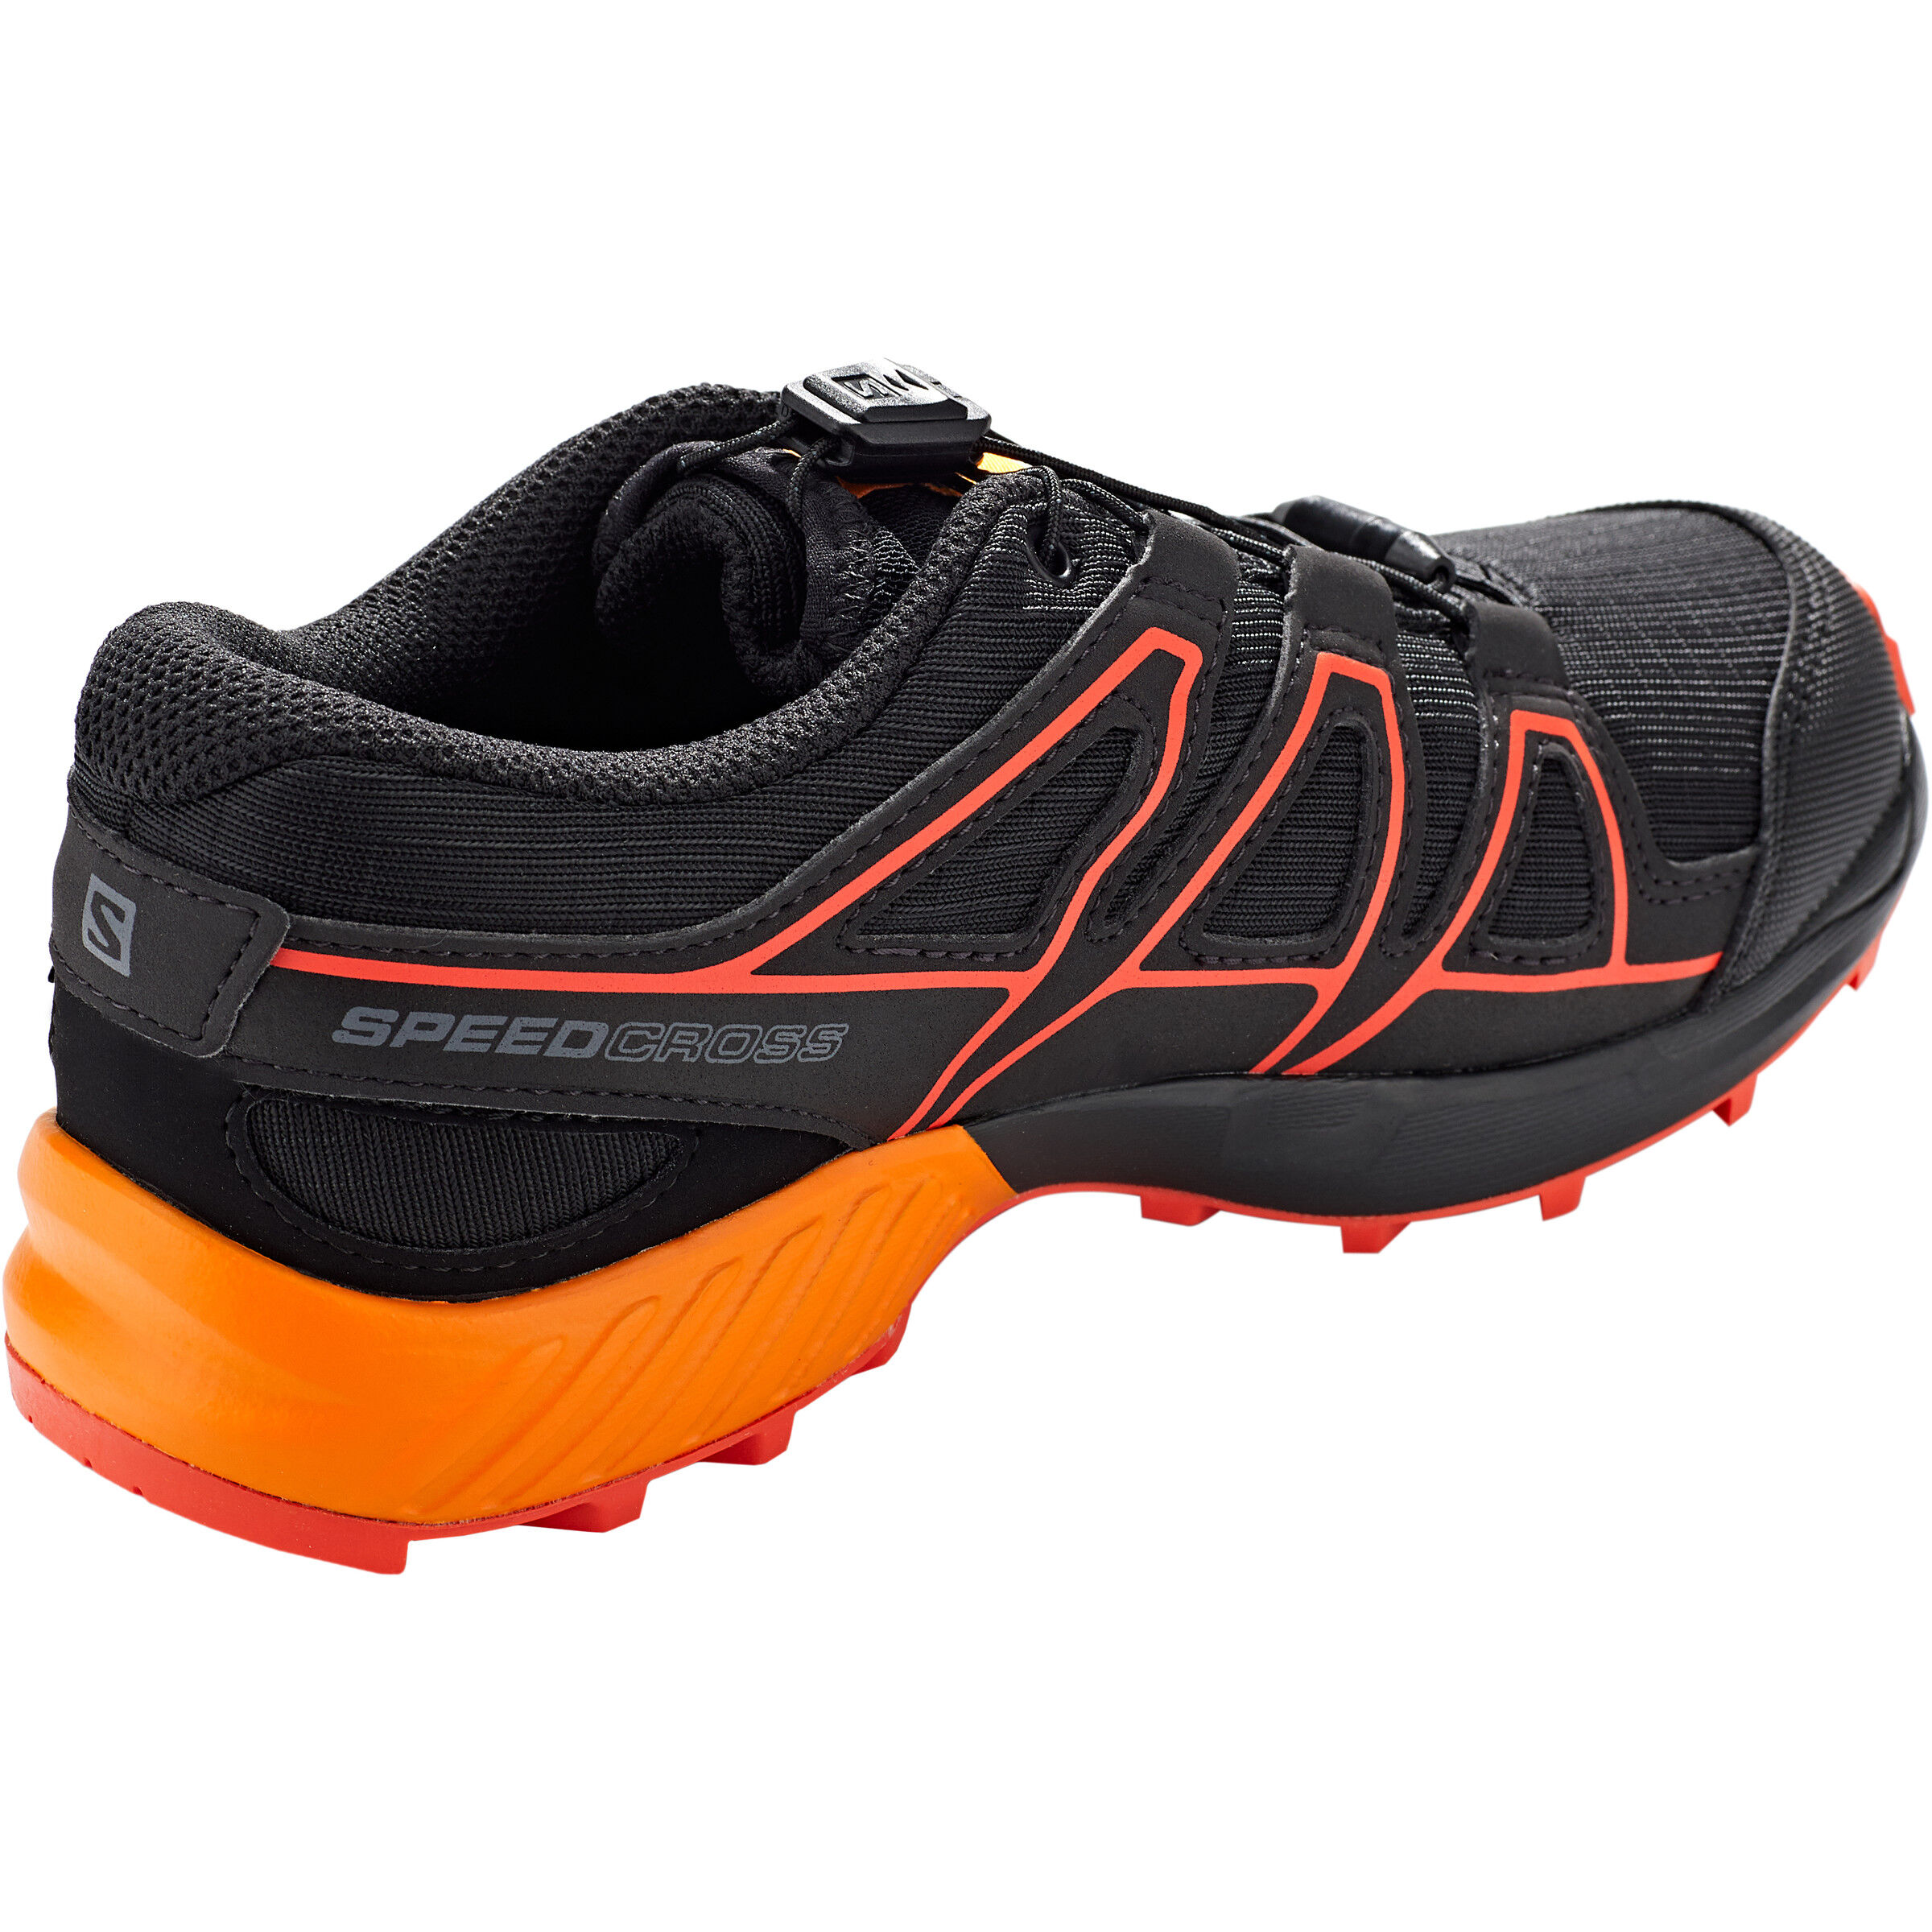 Salomon Speedcross CSWP Shoes Kinder blacktangelocherry tomato